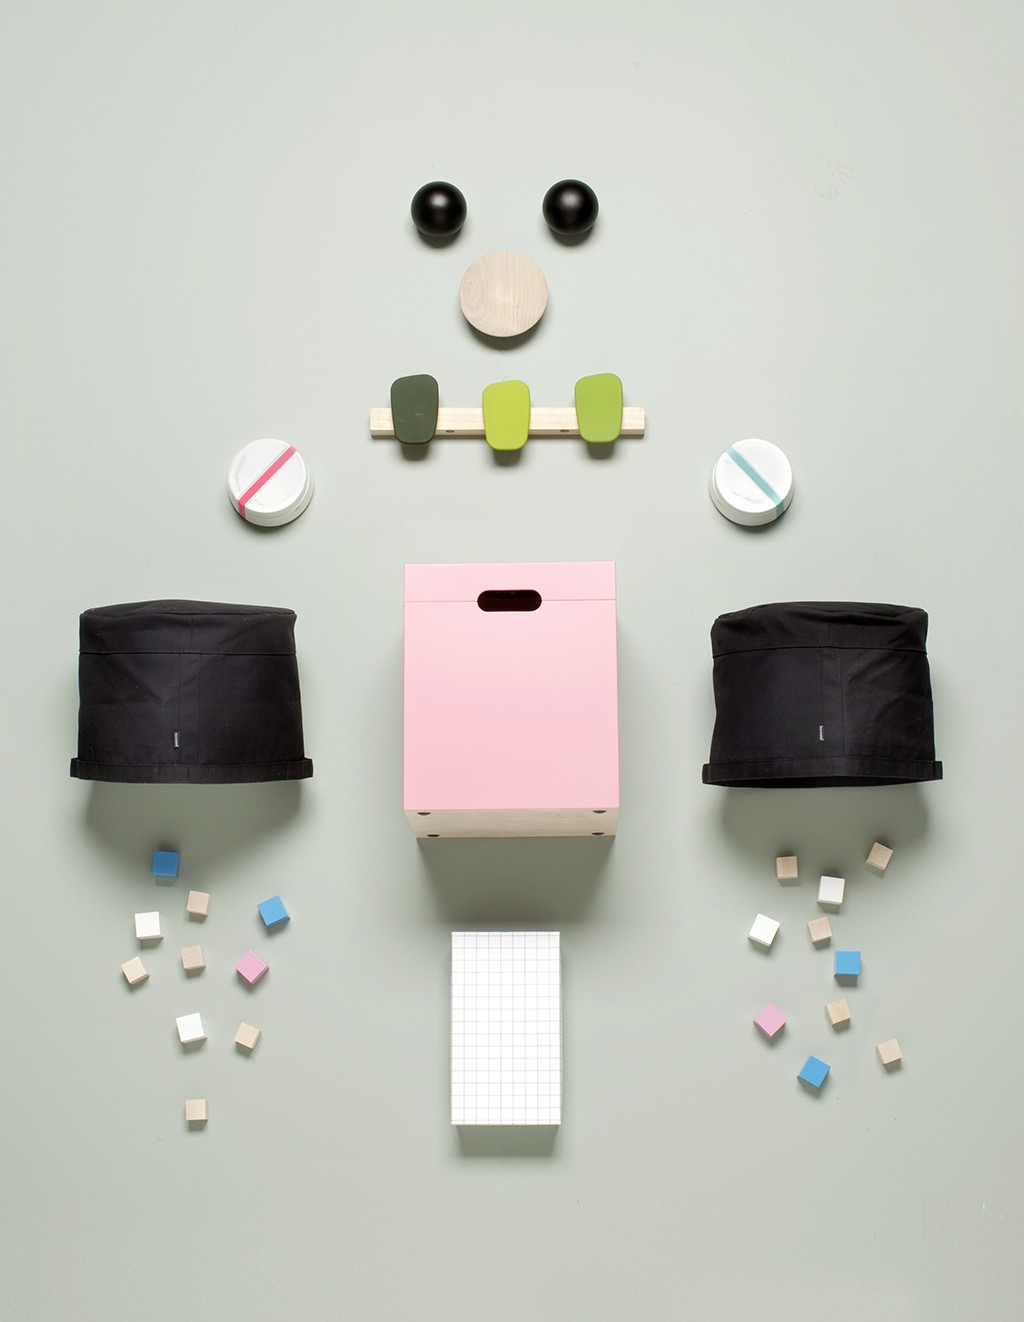 A place for everything for Deko-magazine by Susanna Vento